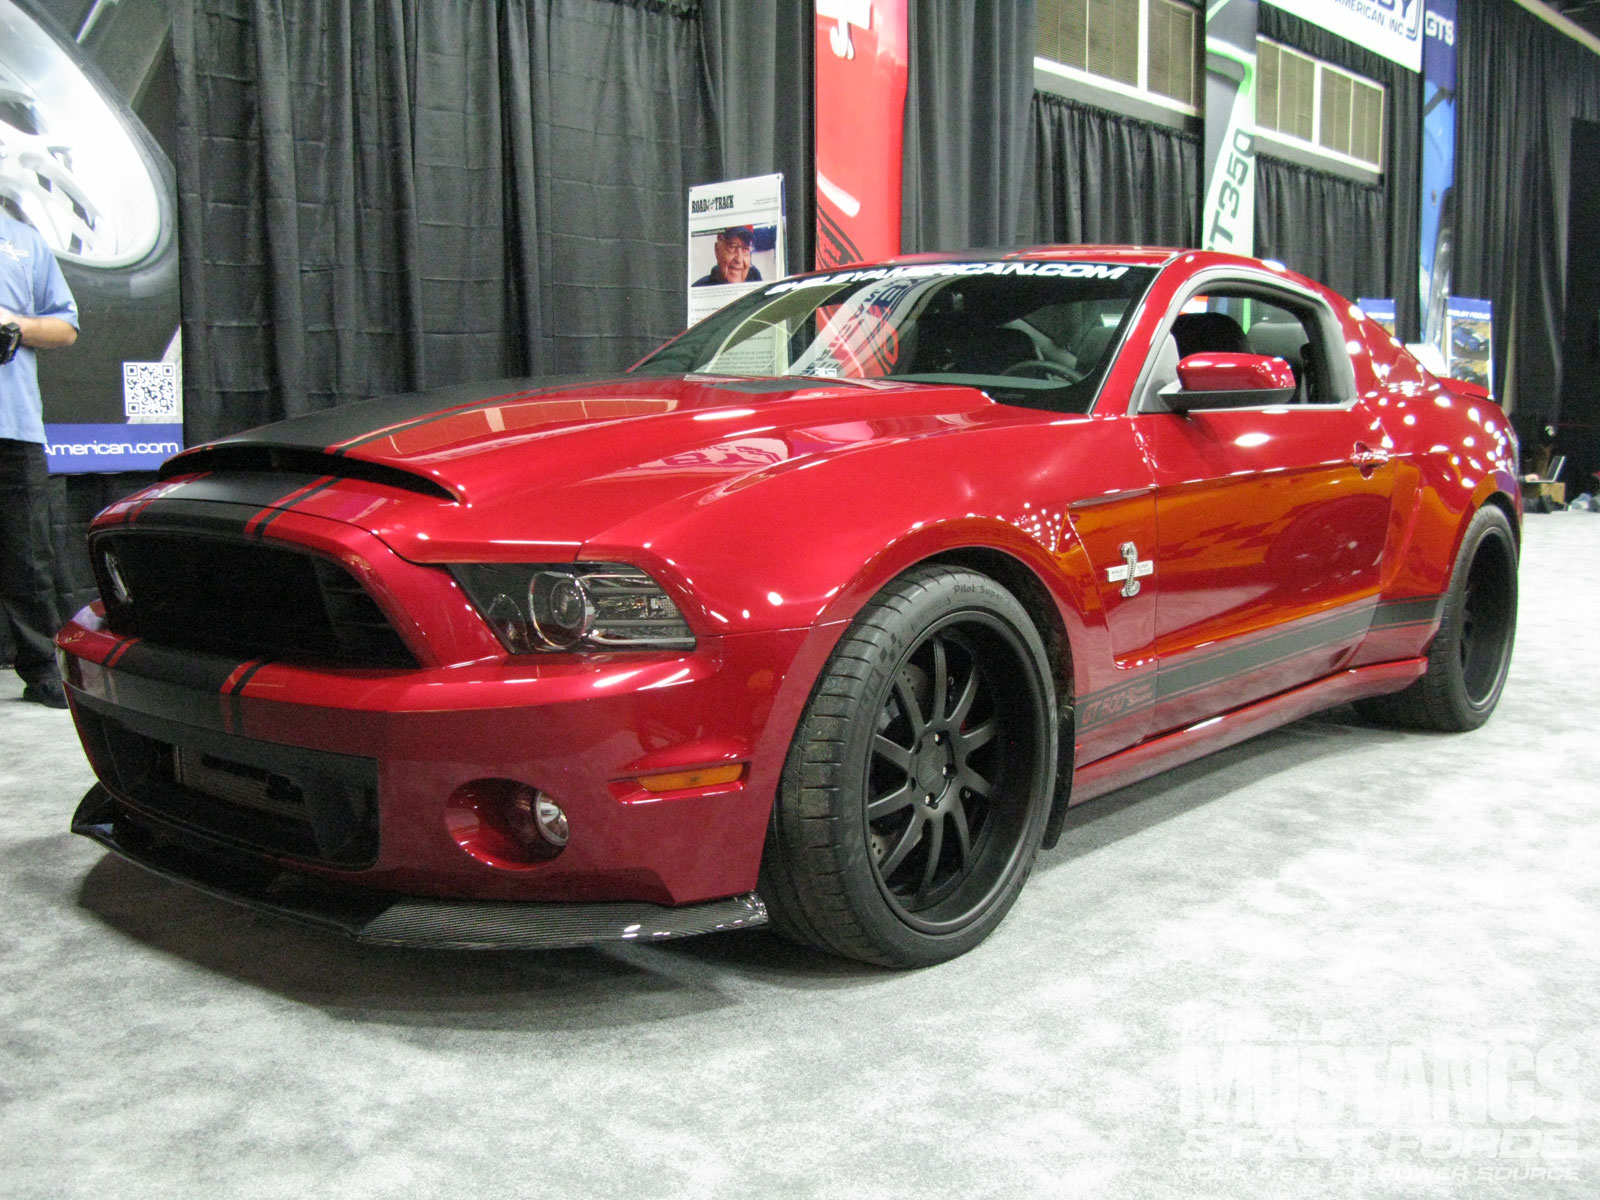 Mmfp 1301 15 2013 Shelby Gt500 Supersnake Widebody Front Three Quarter View